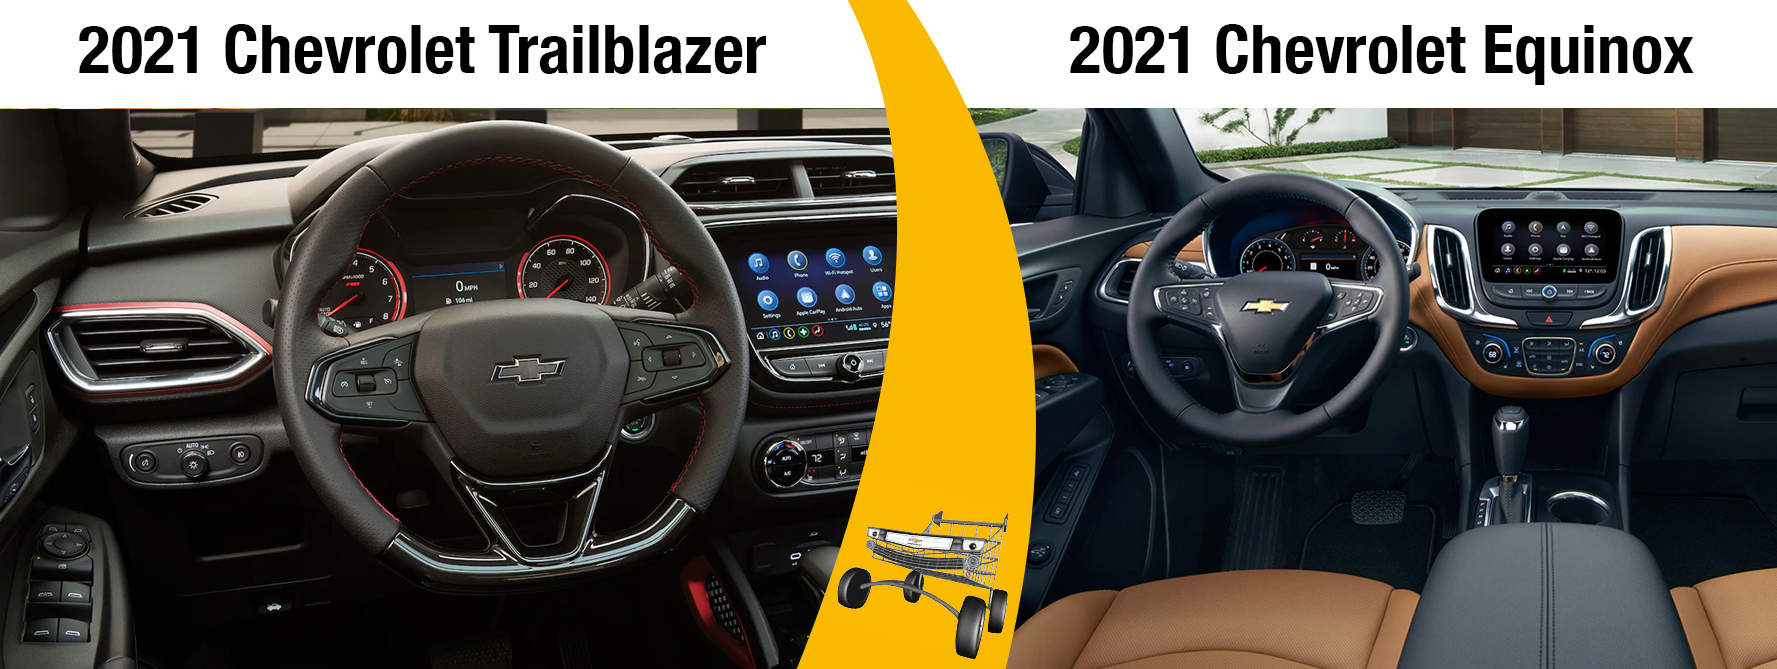 2021 Chevy Trailblazer vs 2021 Chevy Equinox Safety Features